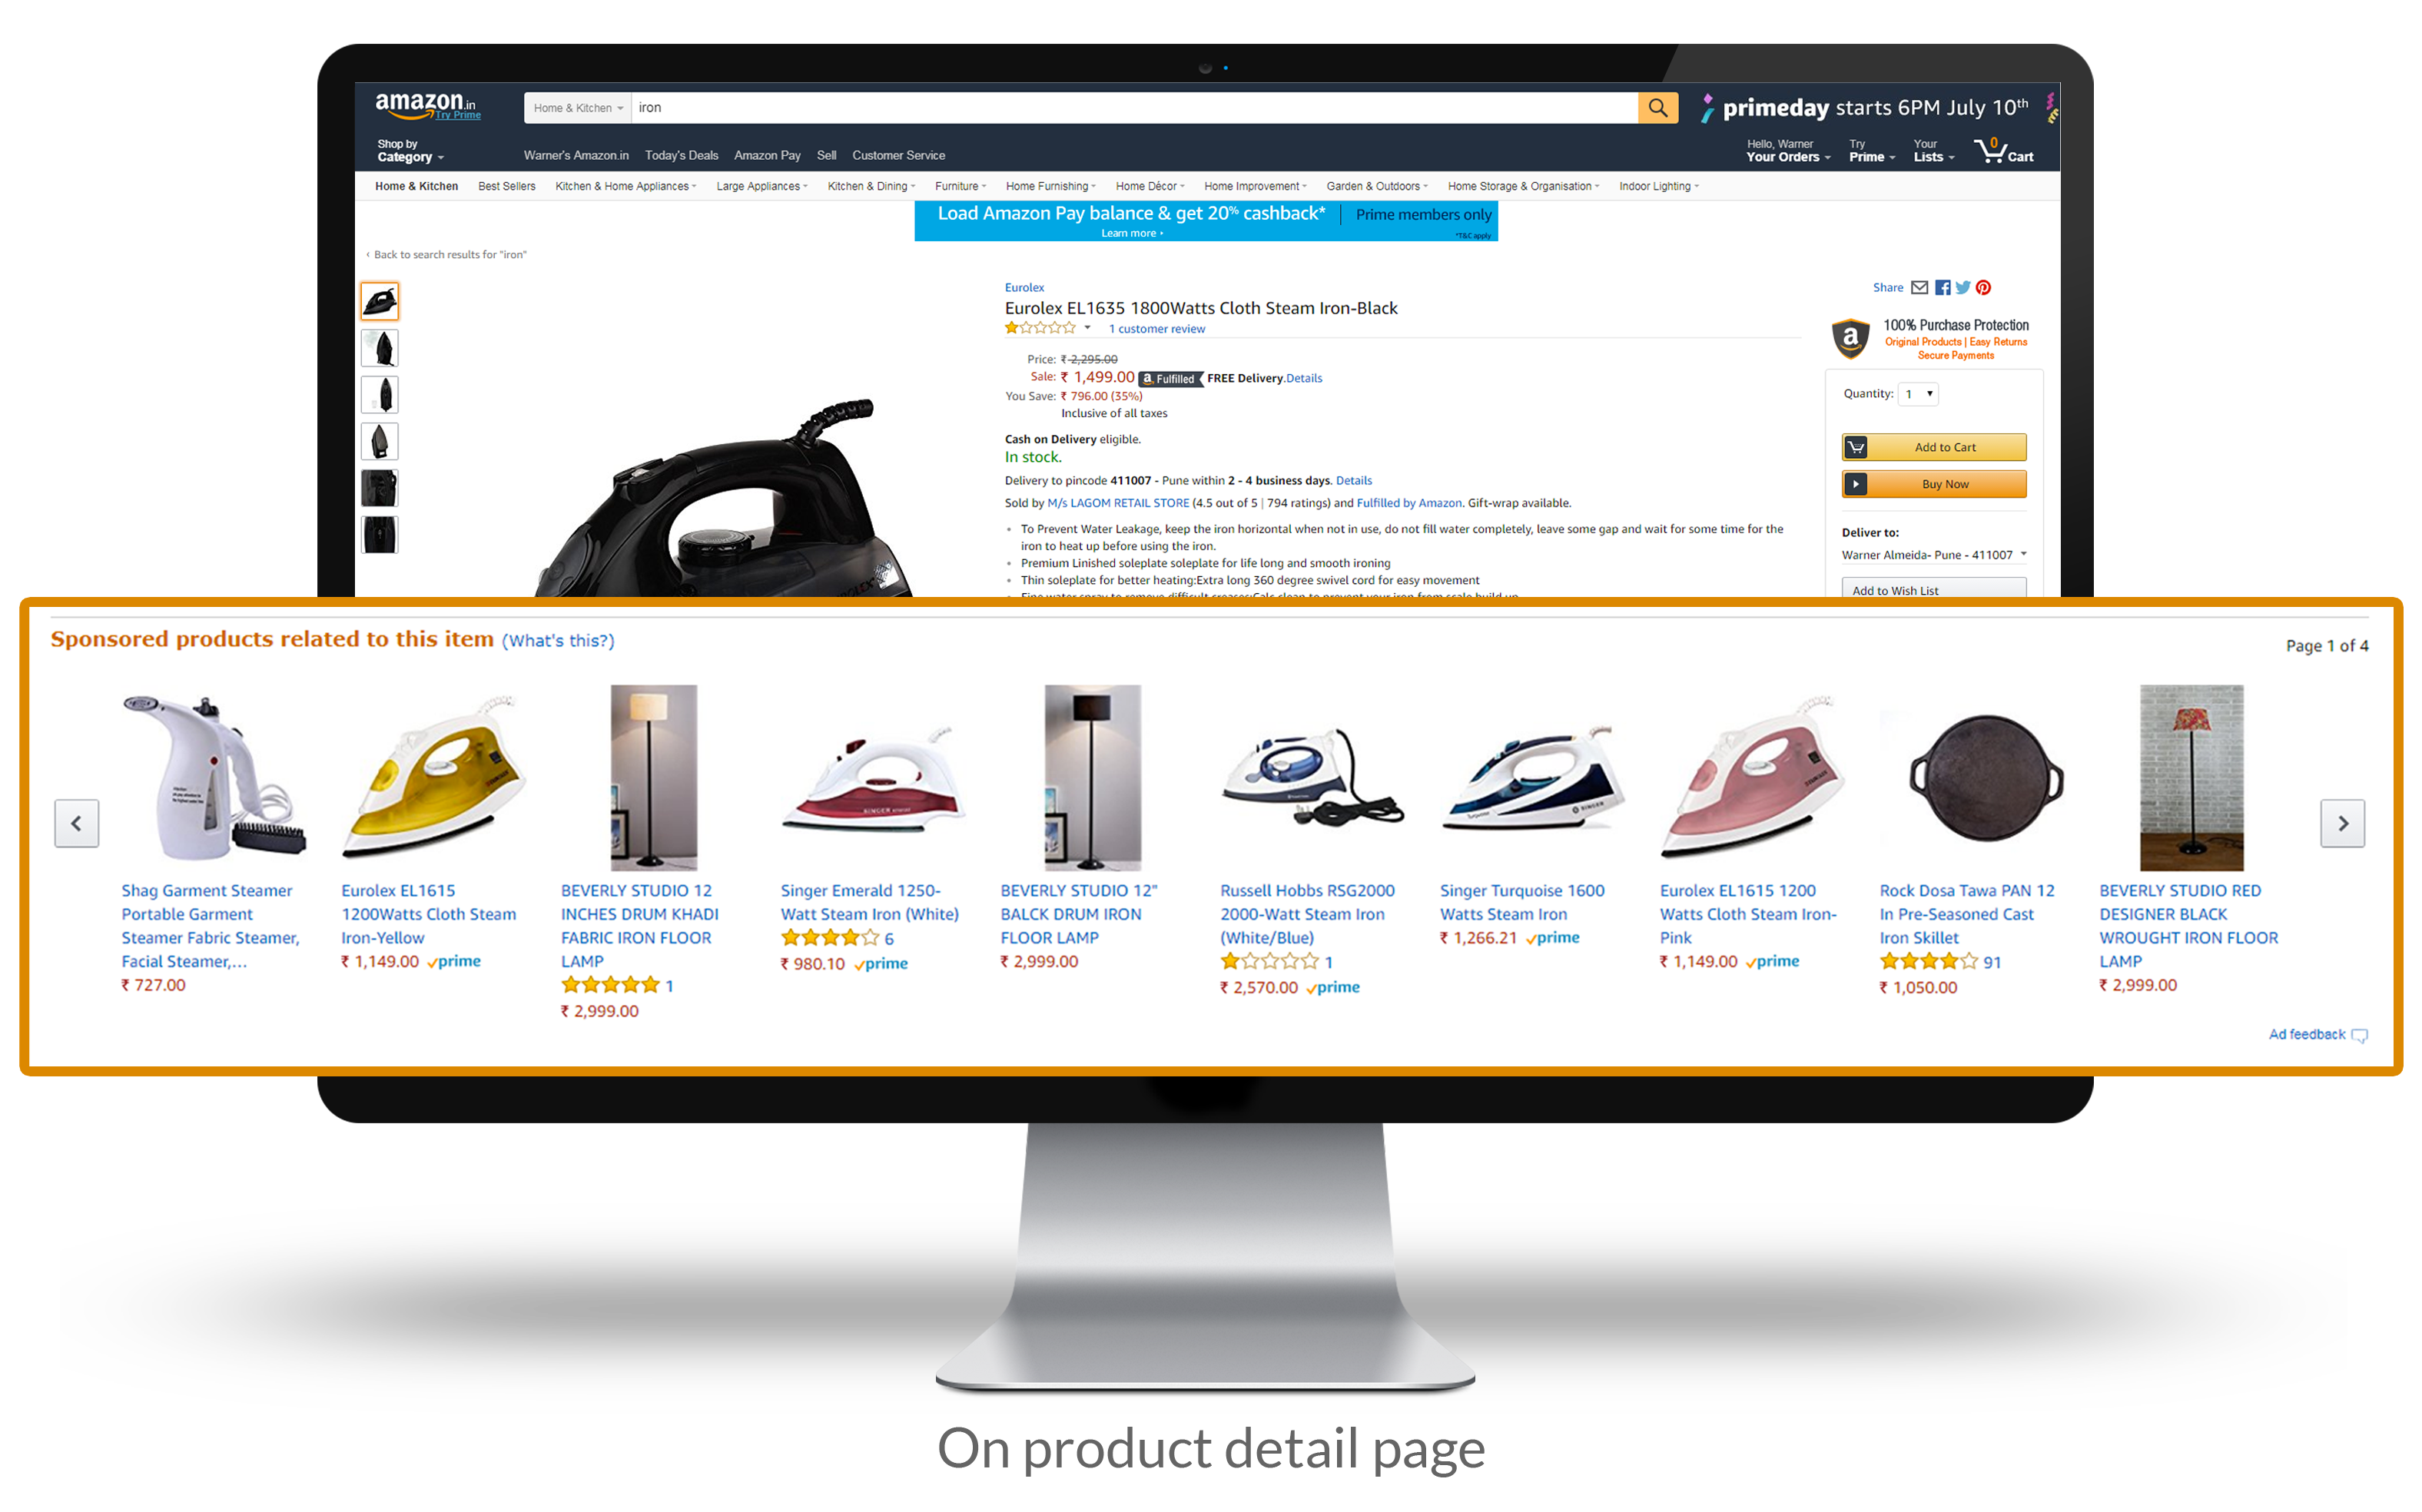 Product detail page across desktop and mobile